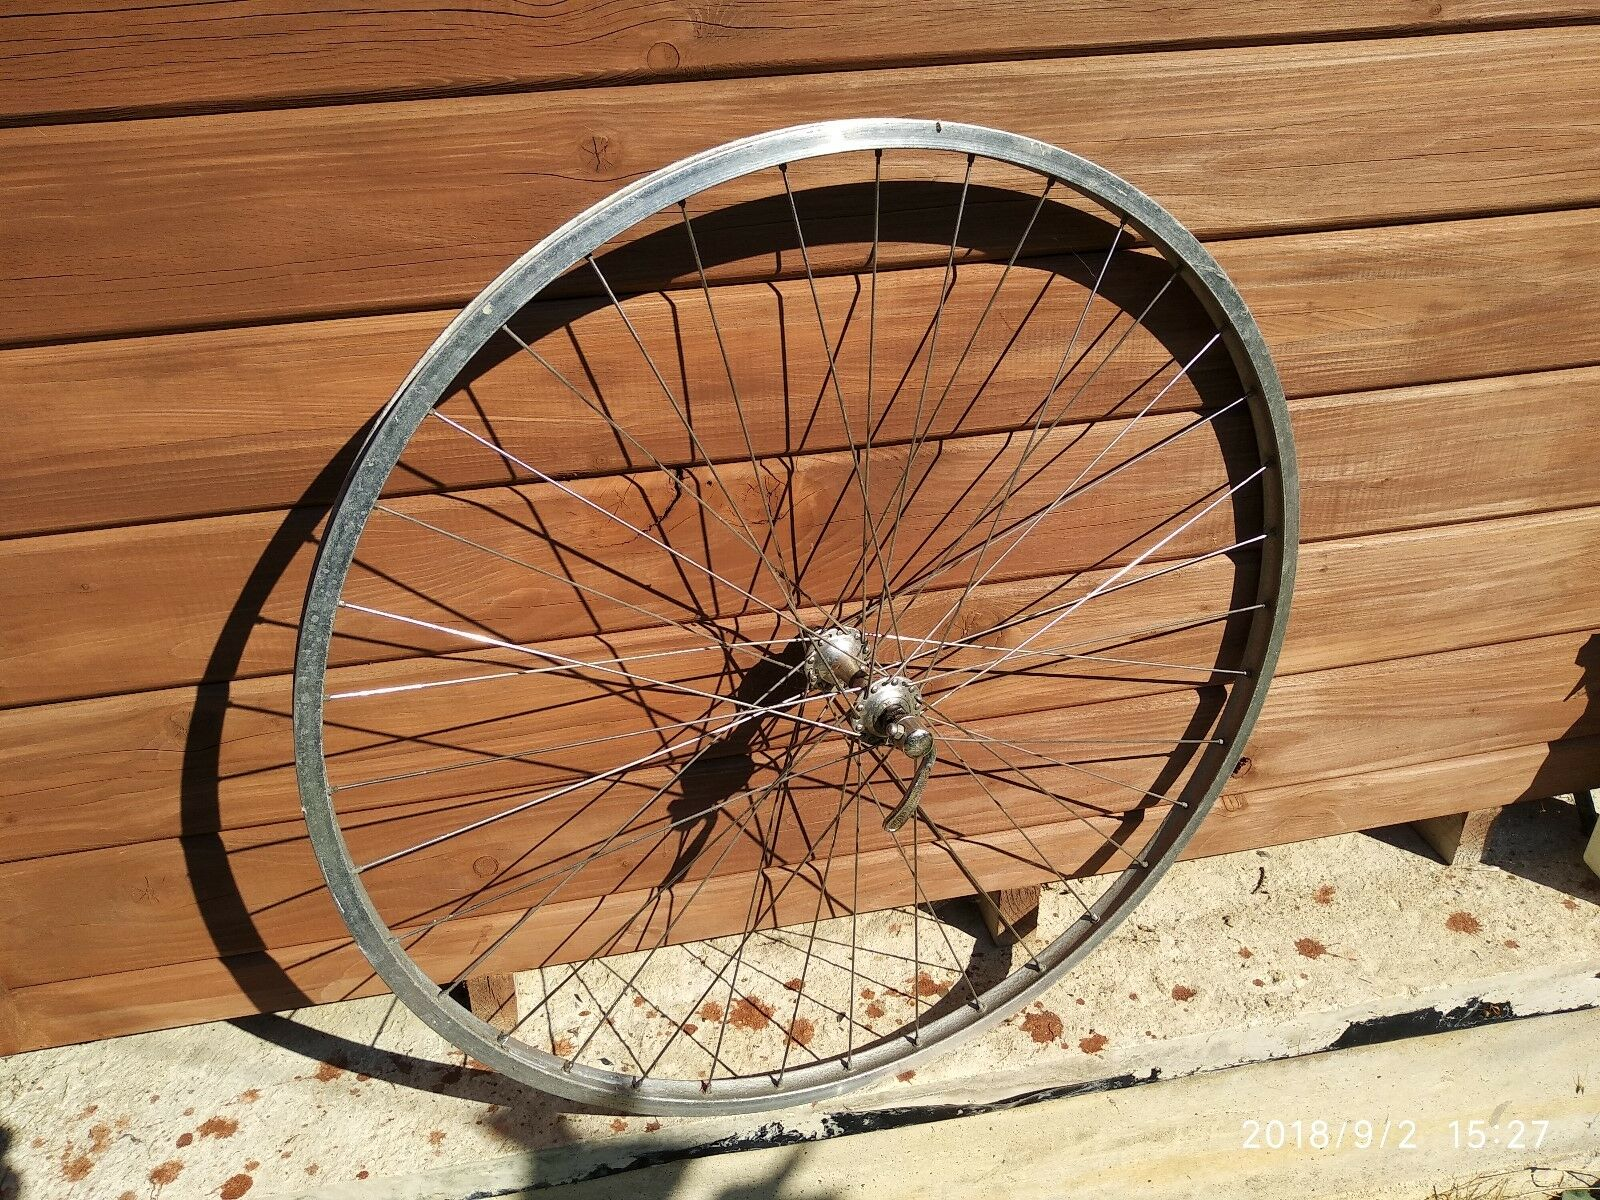 Campagnolo Record weinmann convex alloy rim 700c front wheel